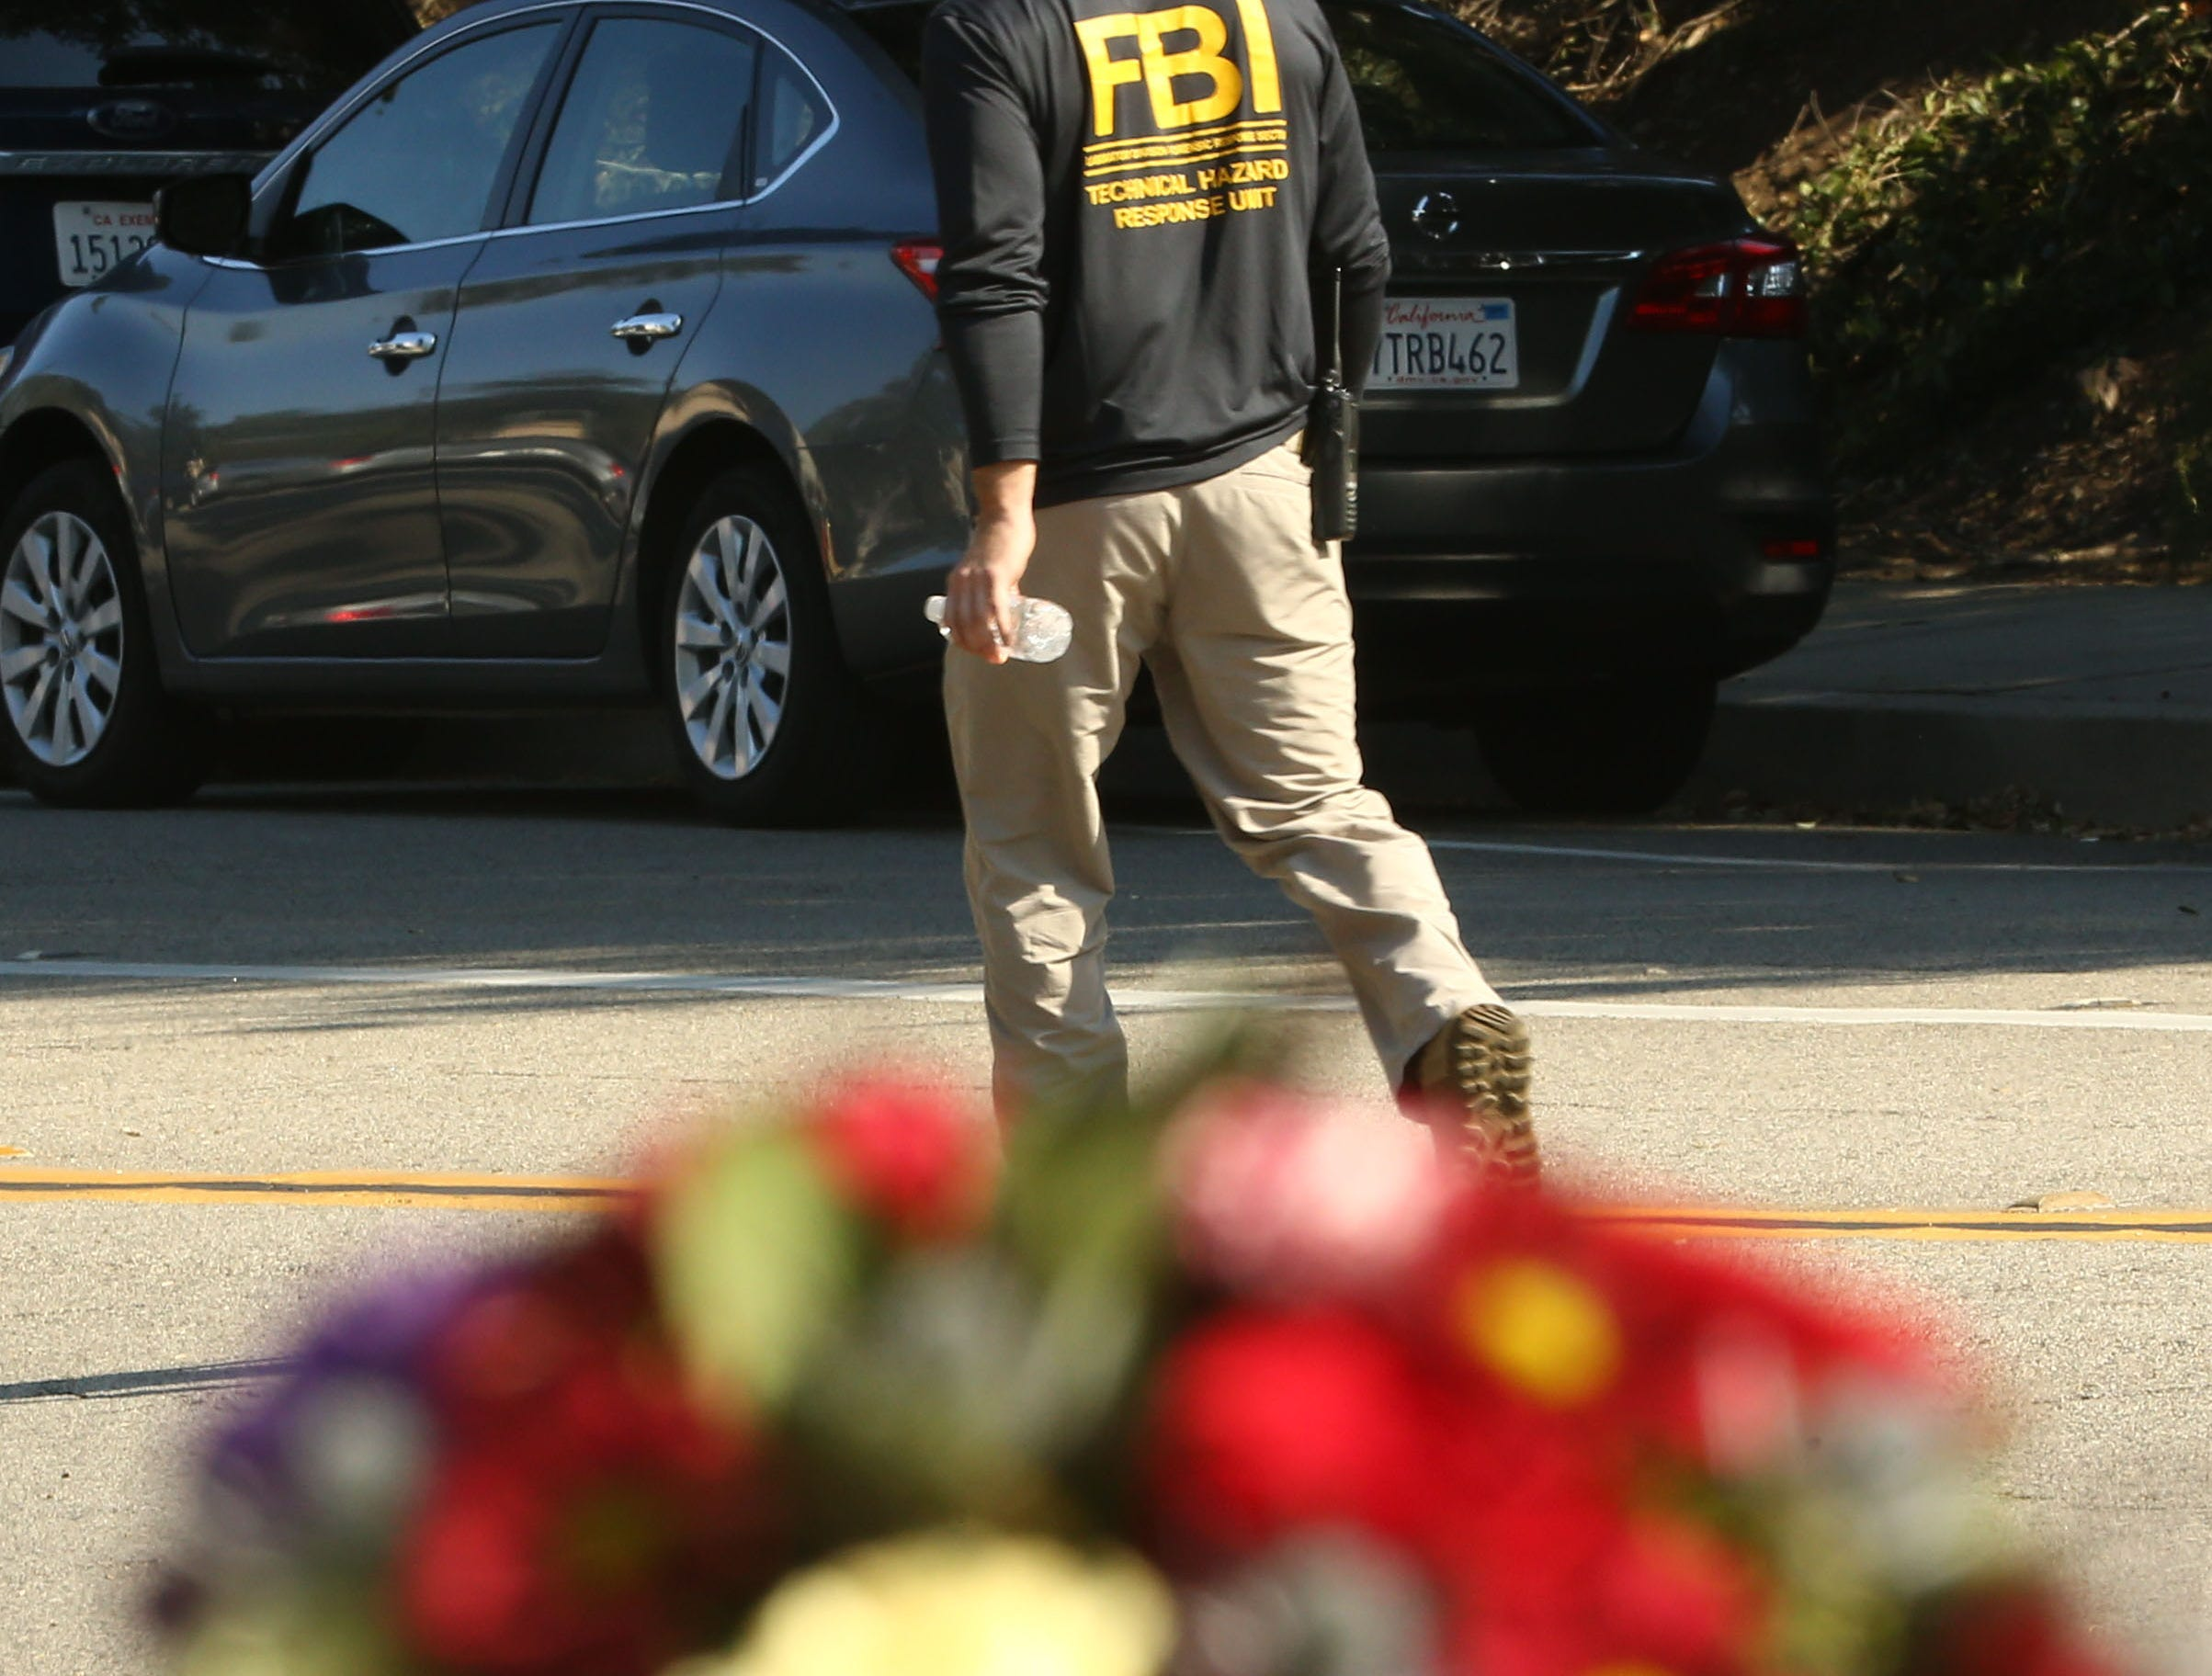 The FBI and local law enforcement continue their investigation at the Borderline Bar and Grill on Saturday, Nov. 10, 2018, in Thousand Oaks, Calif. Twelve people were shot and killed Wednesday by gunman Ian David Long who opened fire at the Borderline Bar and Grill.